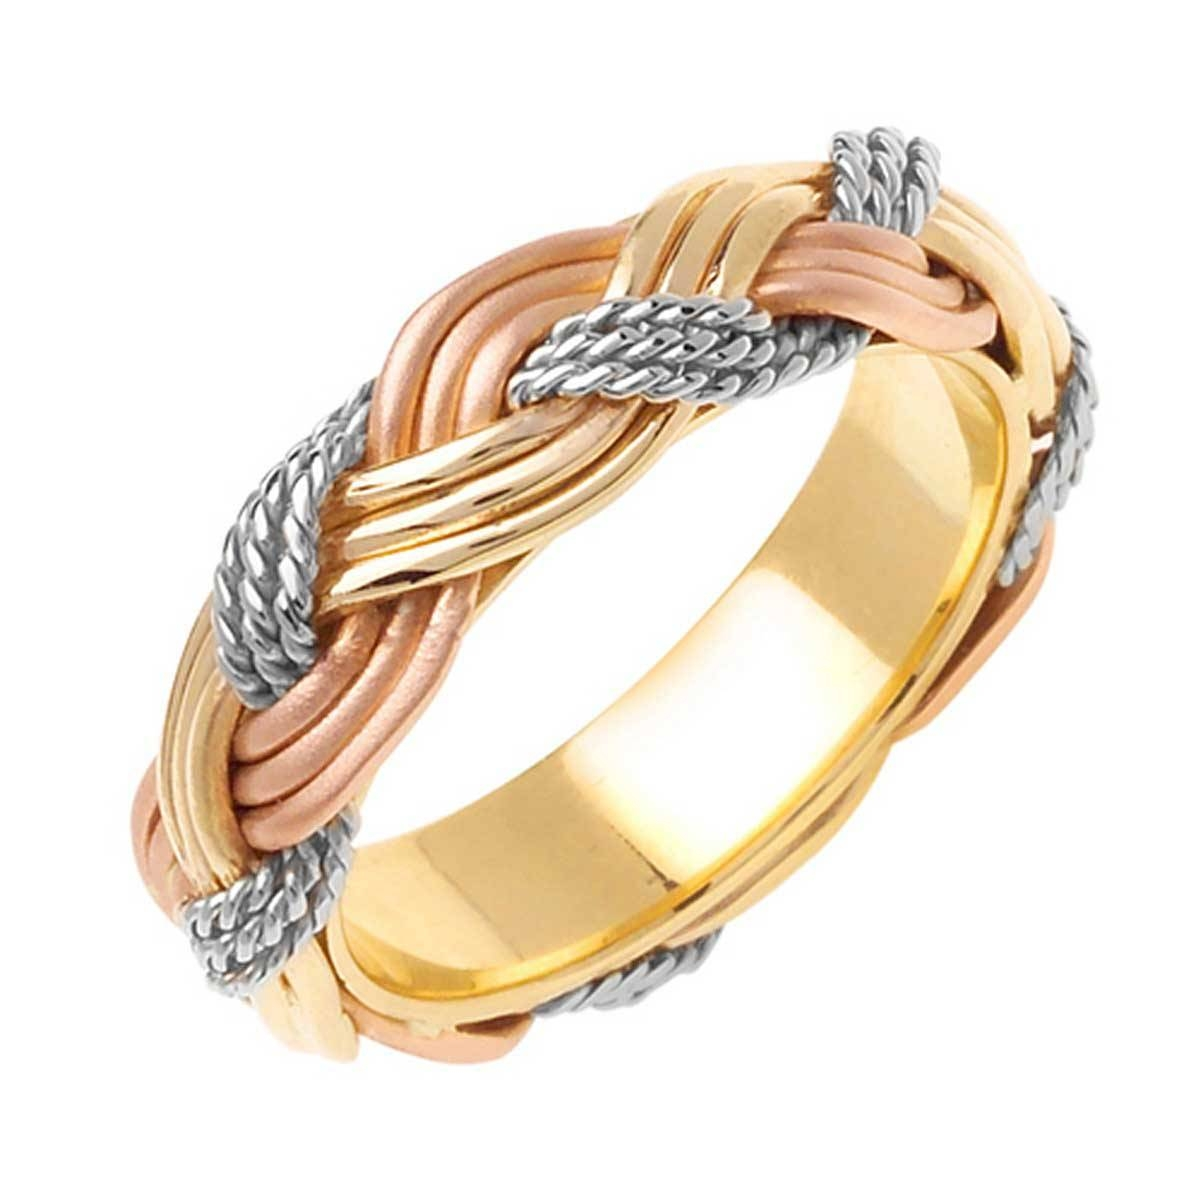 14k Tri Color Gold African Braid Band 6mm 3002747 – Shop At Regarding Three Color Braided Wedding Bands (View 3 of 15)